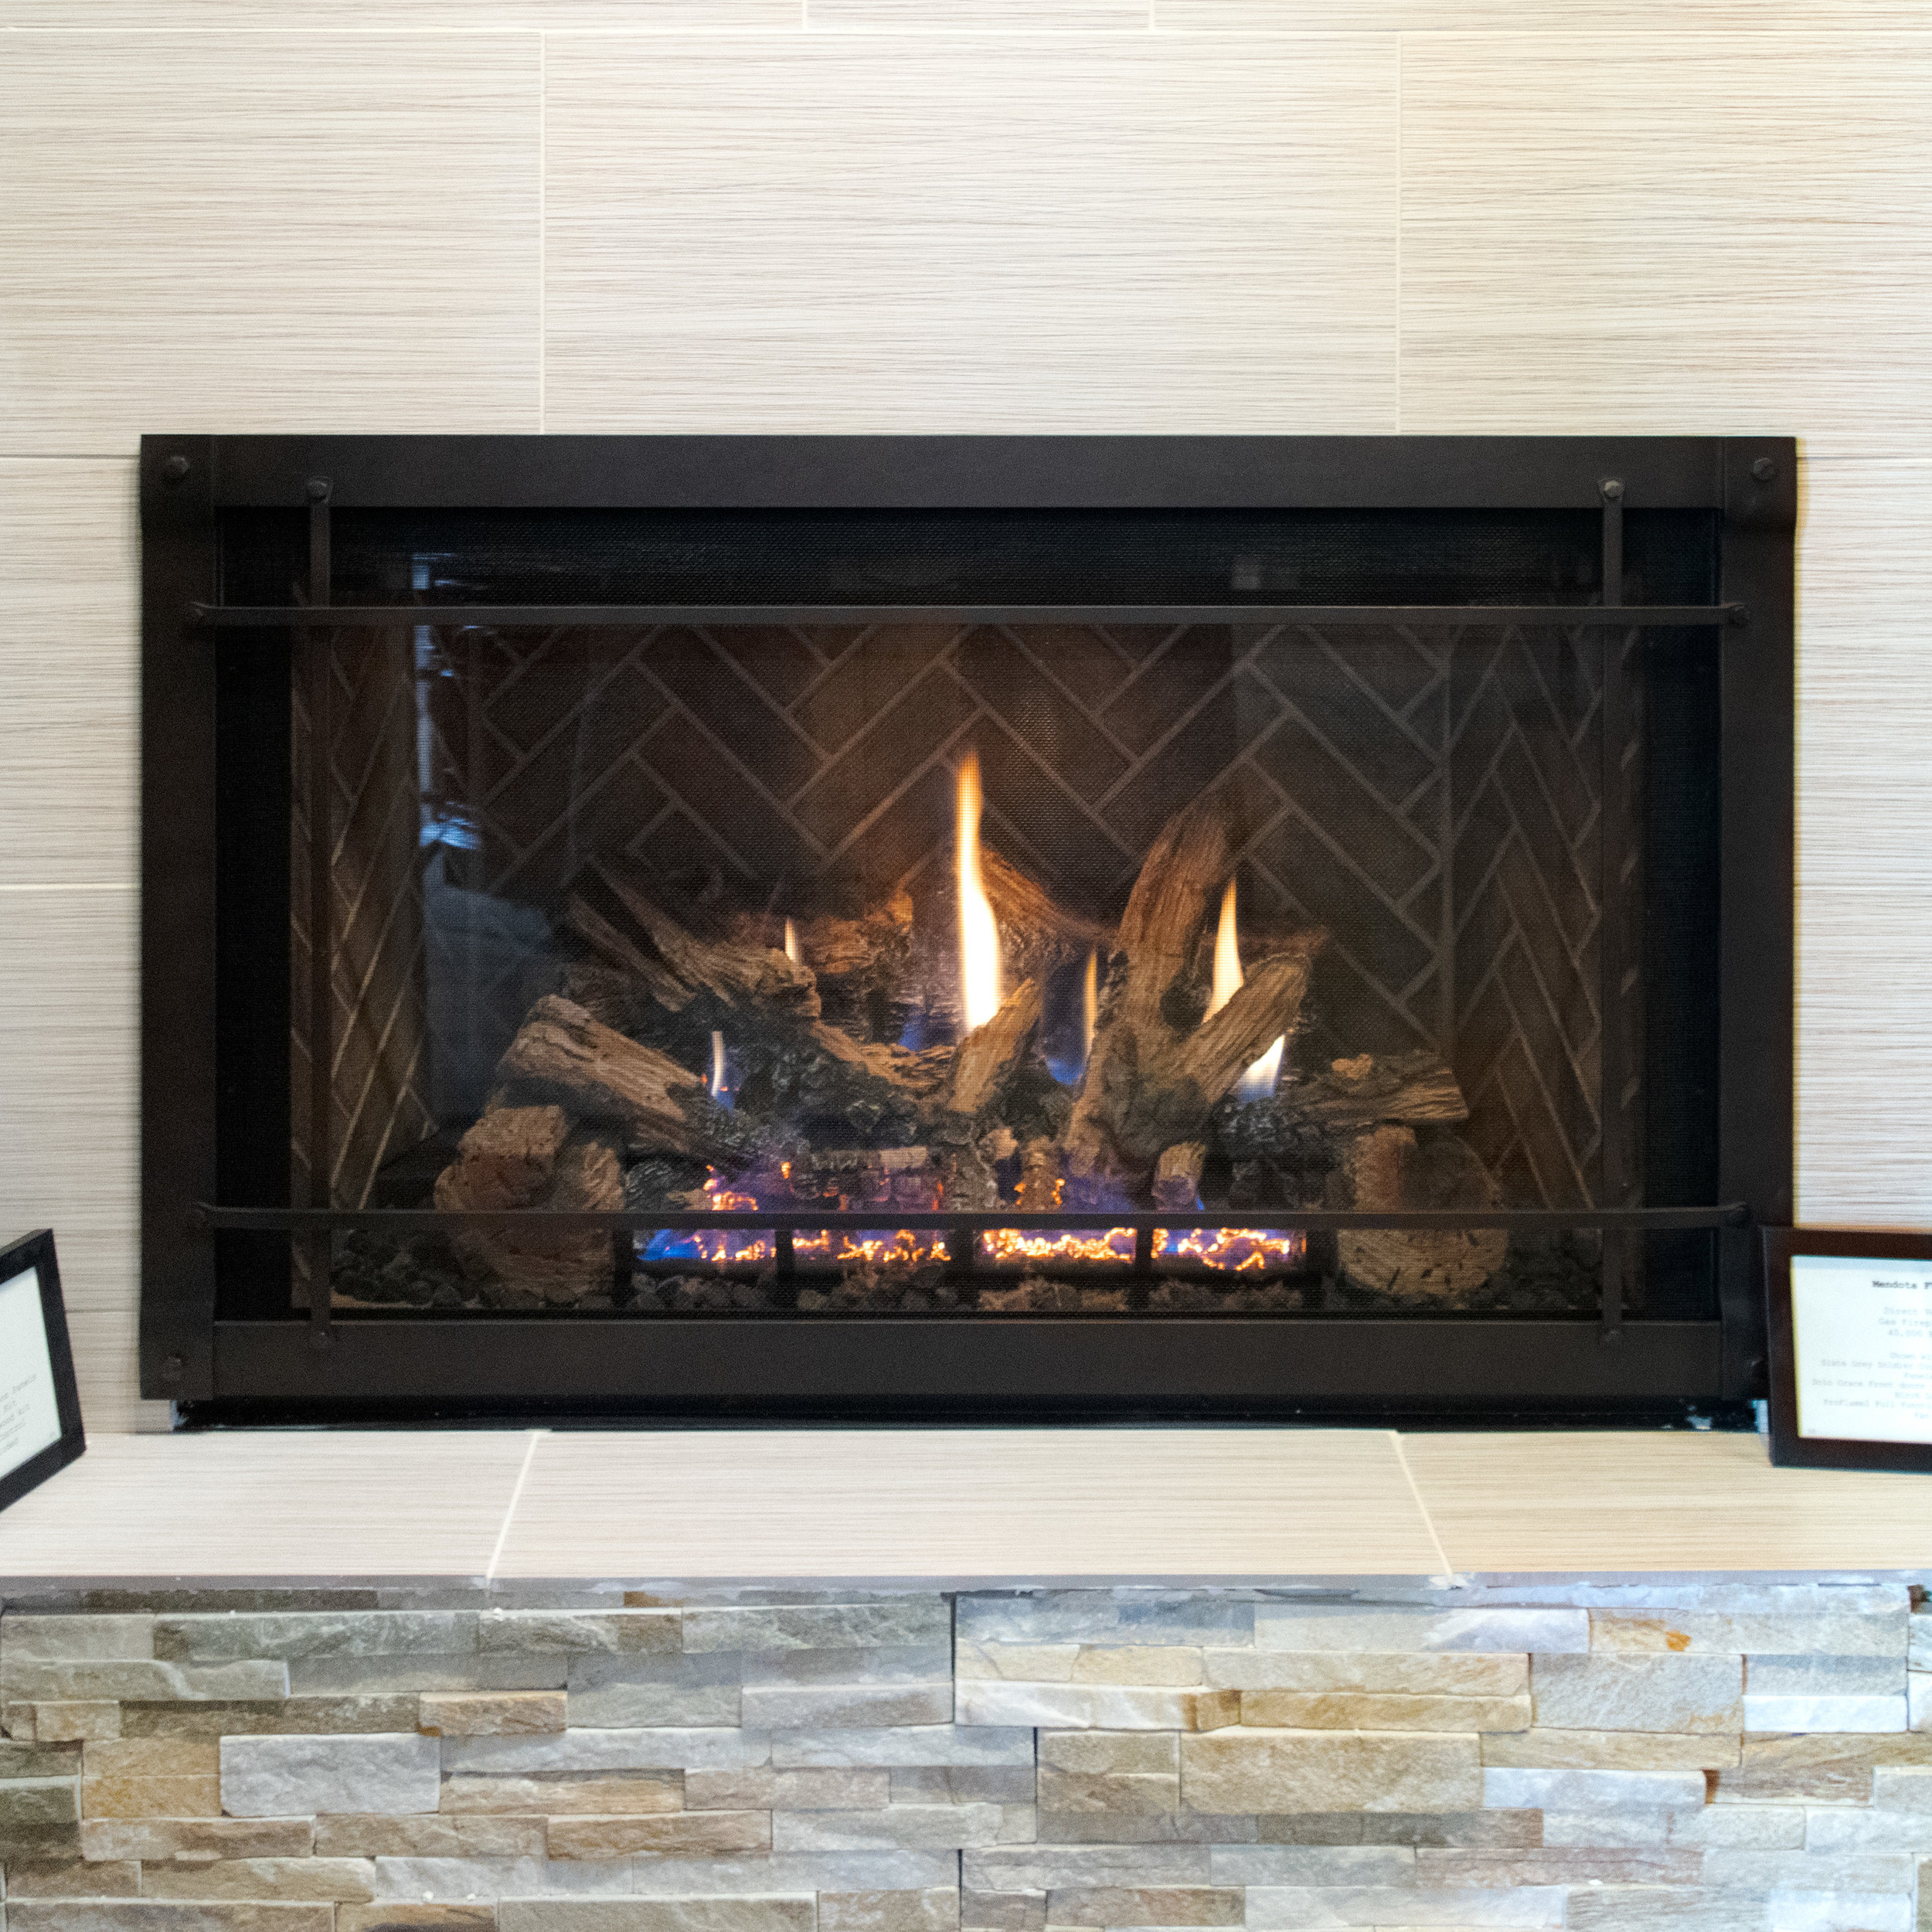 Mendota FV42 - ‧ Direct Vent Gas Fireplace - 44,000 BTU‧ Tavern Brown Herringbone Firebox Panels‧ Grace Wide Front W/ Accent Bars - Aged Leather‧ White Oak HD Logs‧ Proflame2 Full Function Remote Control‧ Fan‧ Superior Quality‧ Traditionally oriented Fullview firebox‧ Terrific heater‧ Large selection of Fronts – Colors